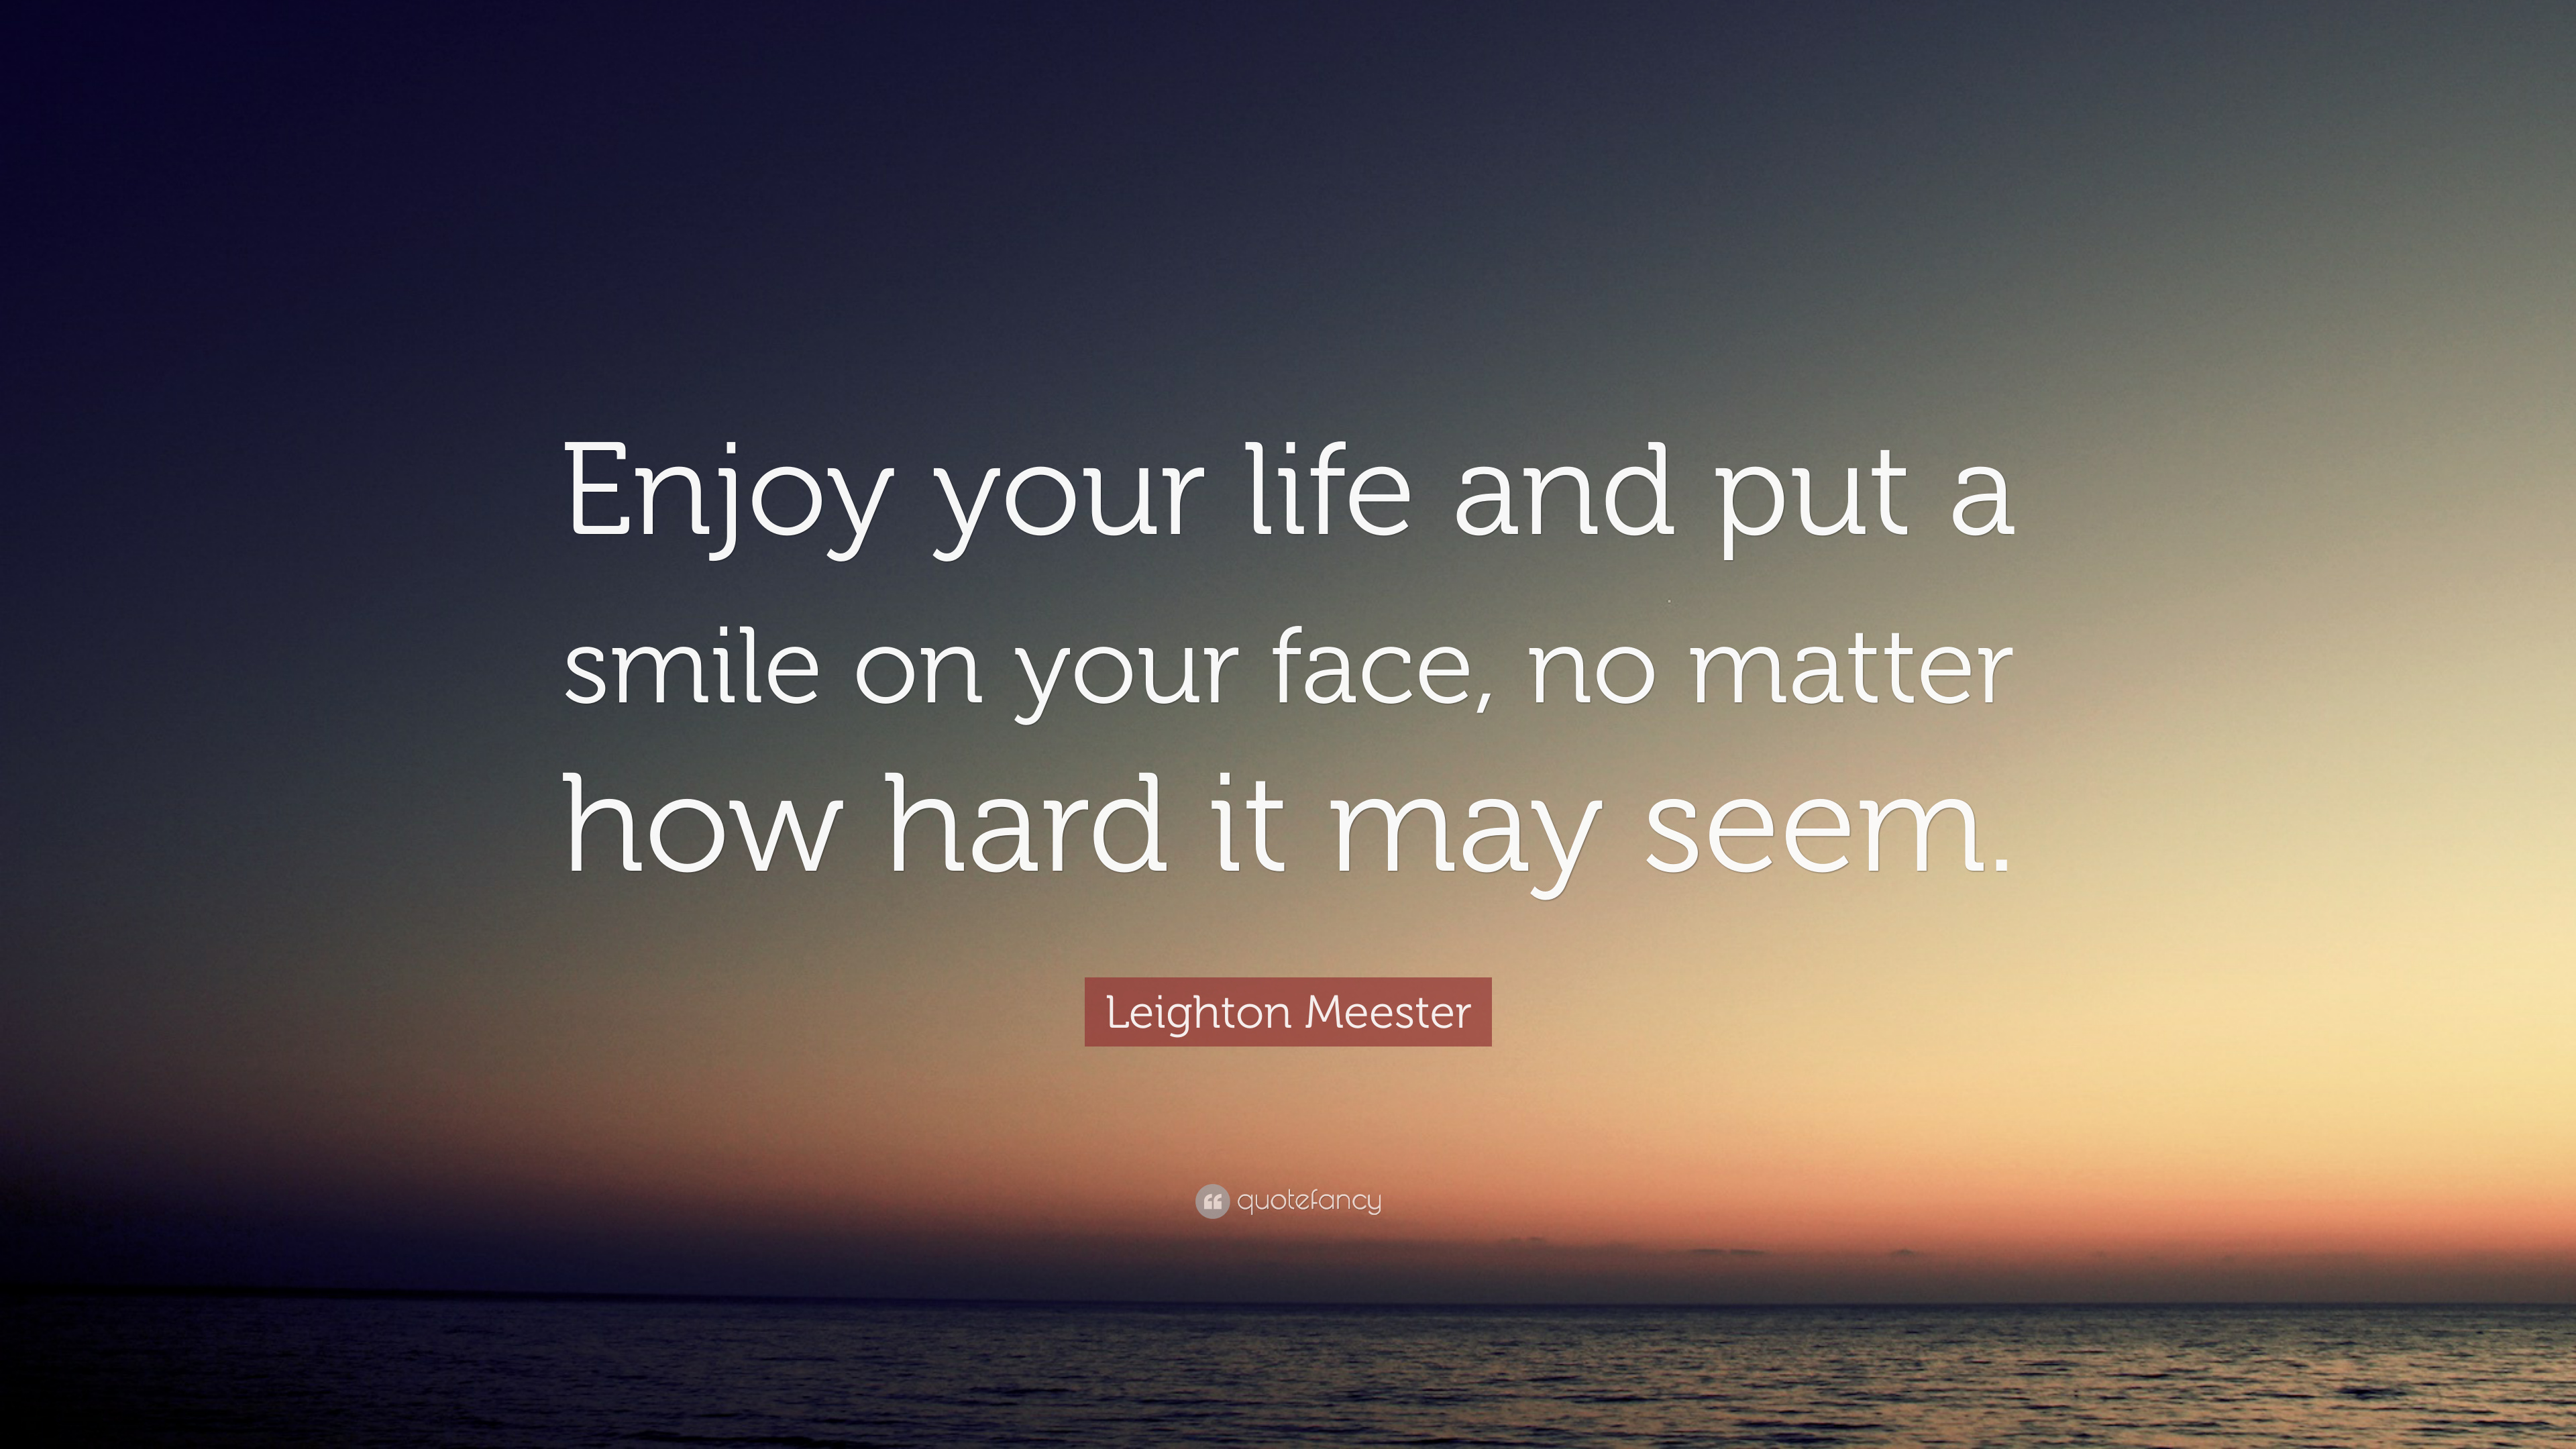 Leighton Meester Quote Enjoy Your Life And Put A Smile On Your